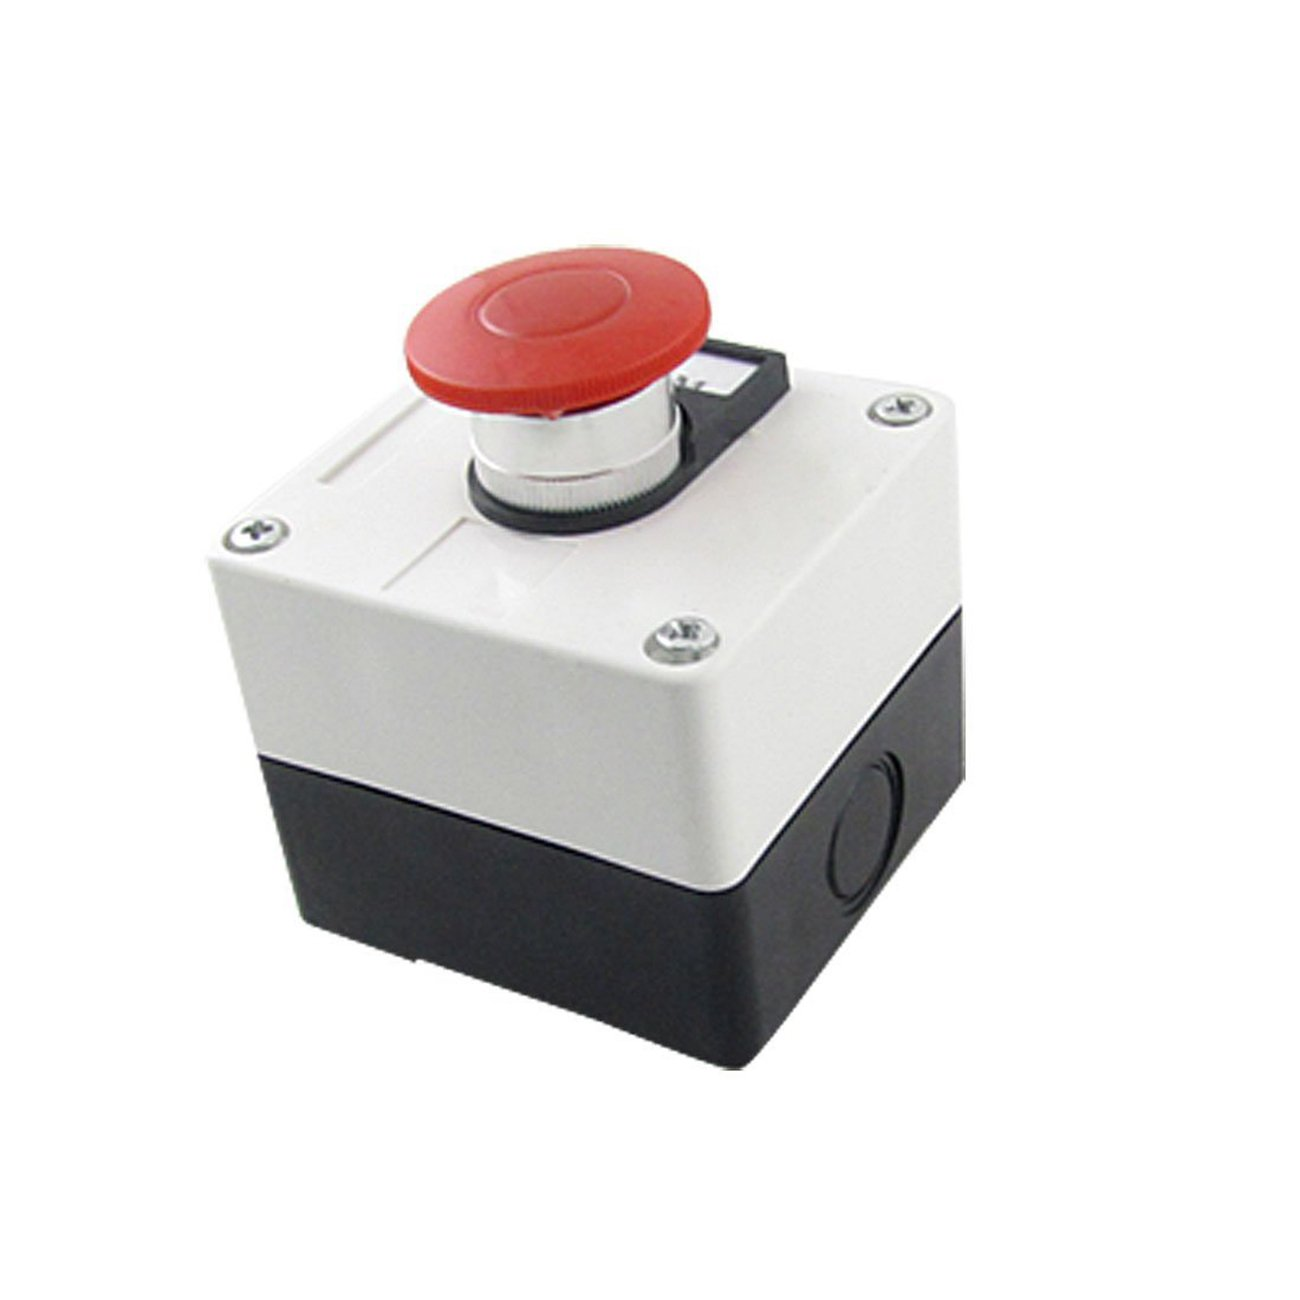 Amazon.com: Saim Momentary Switch Mushroom Push Button Station: Home ...